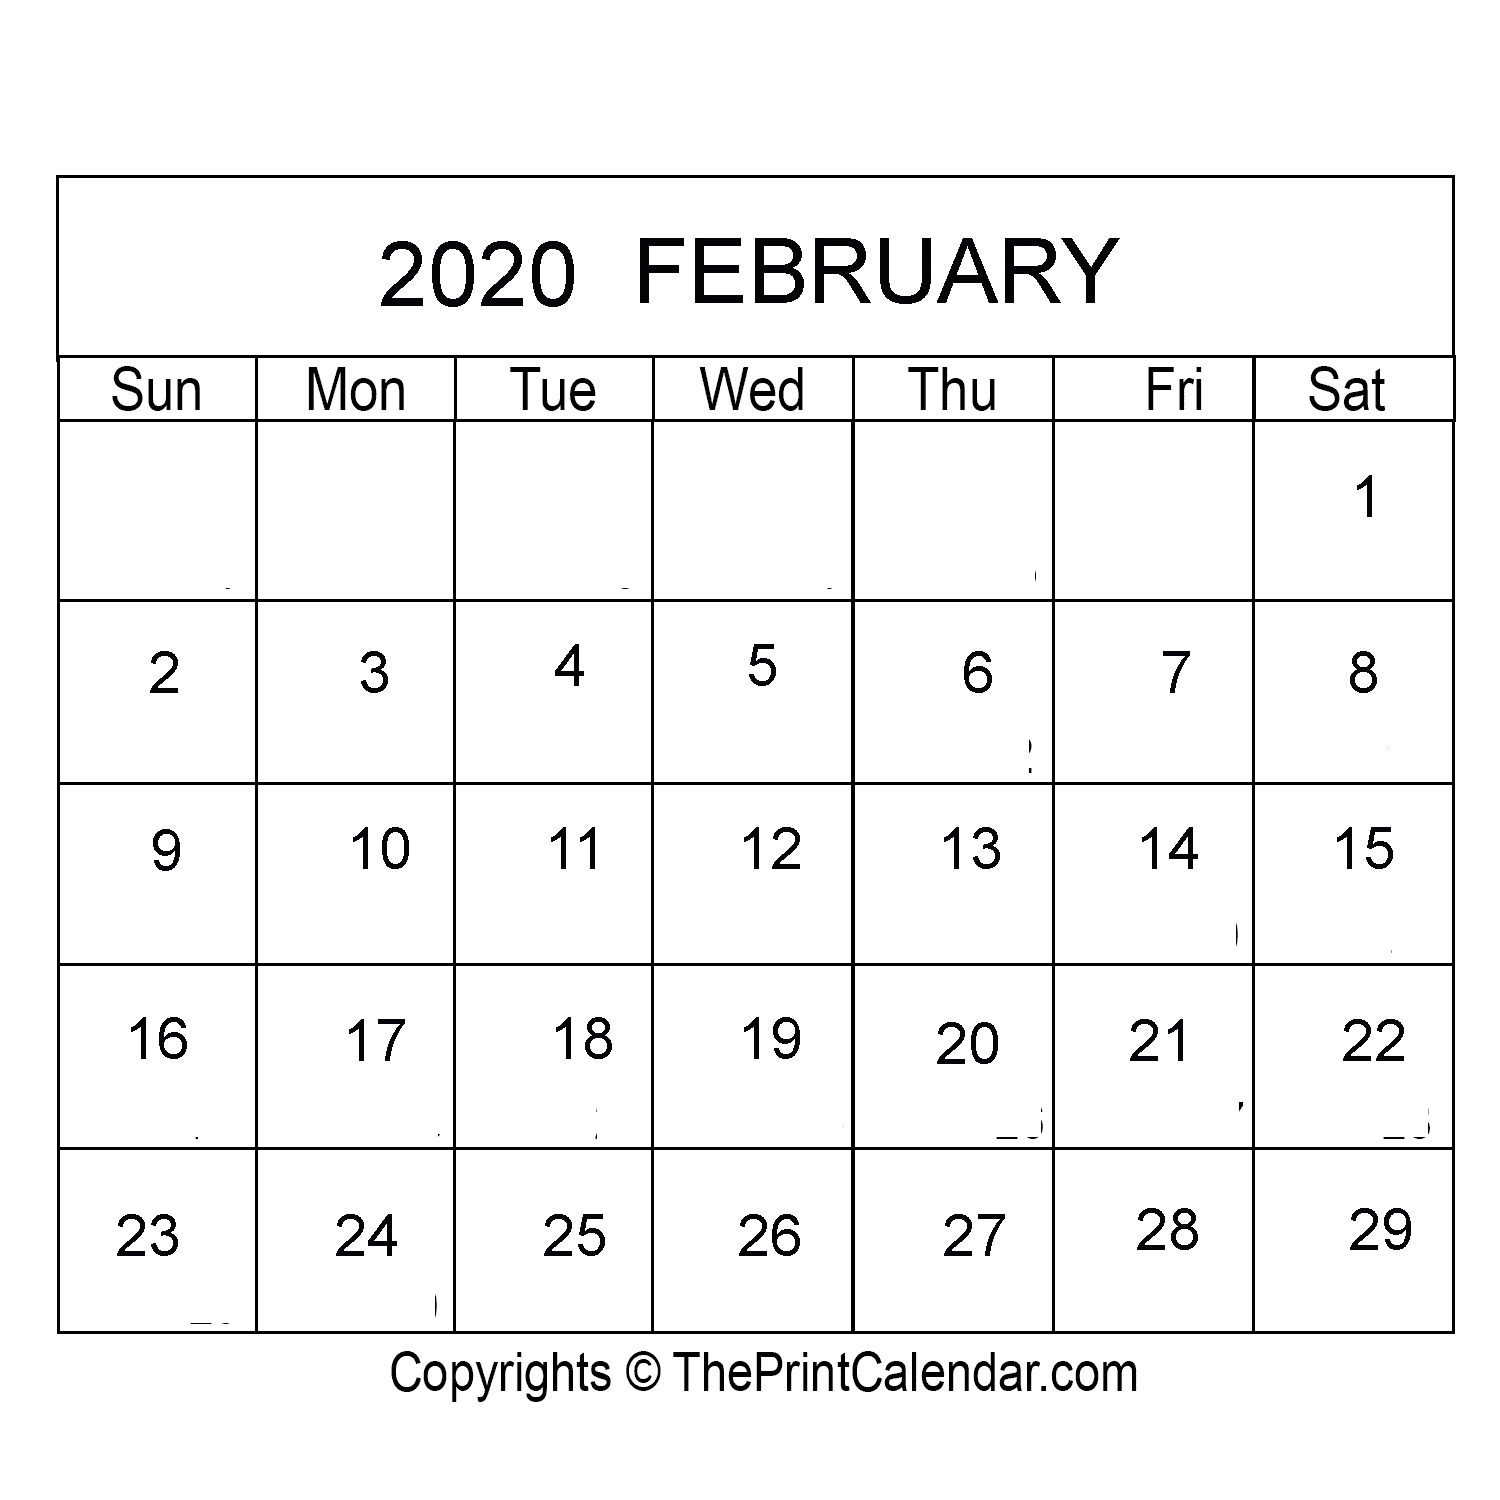 These Are Online Calendar Templates Which Are Editable And